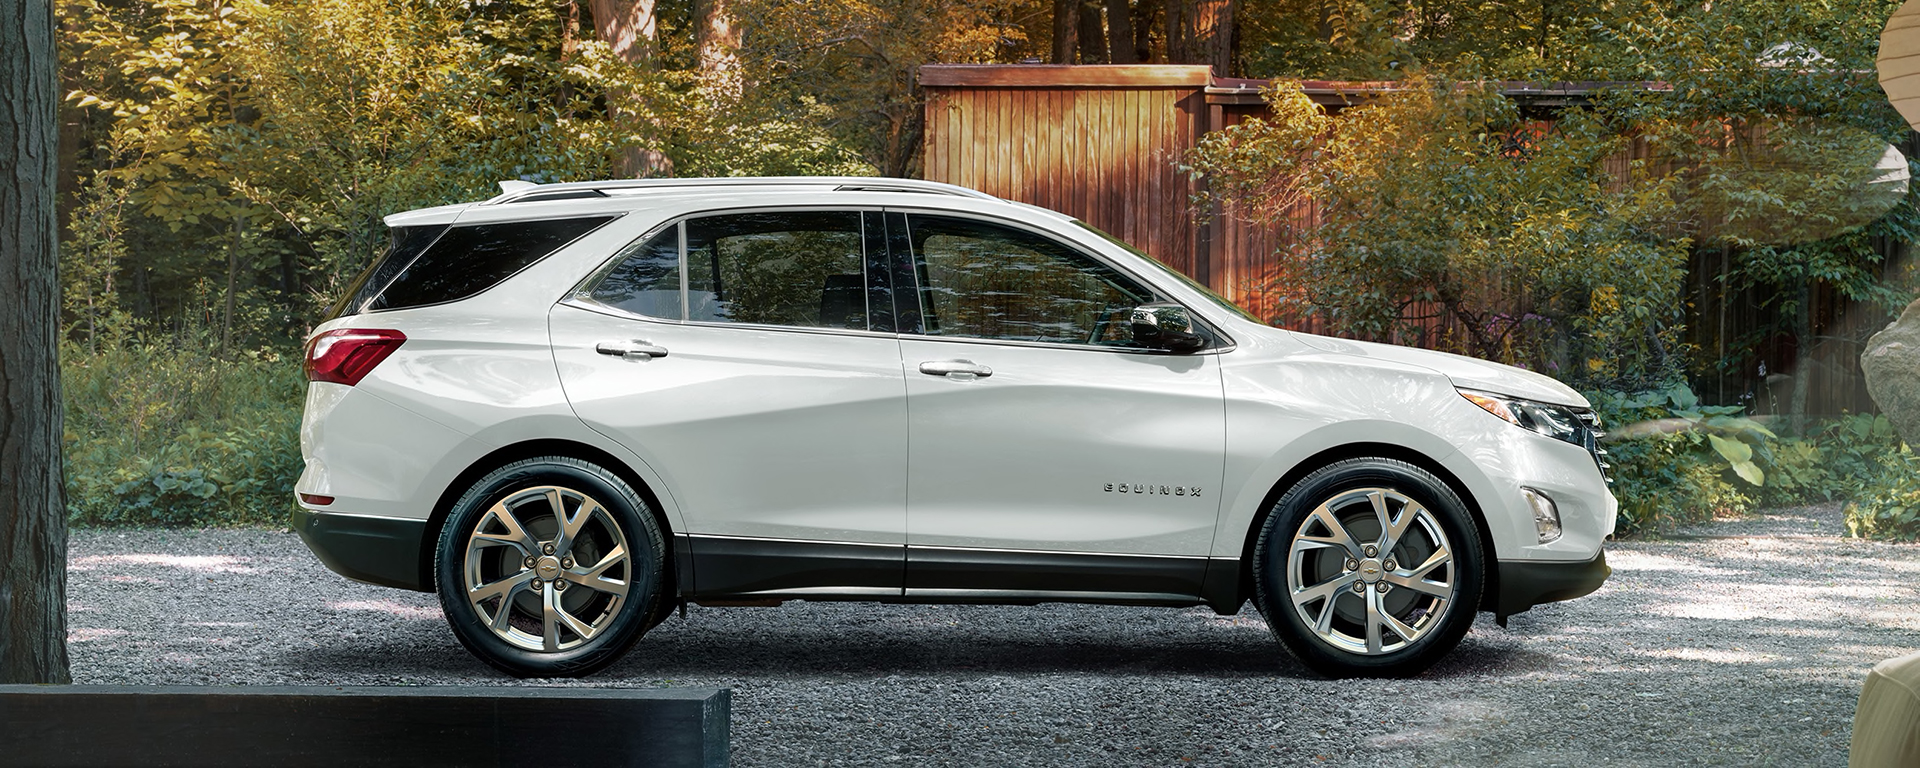 2020 Chevrolet Equinox - Design